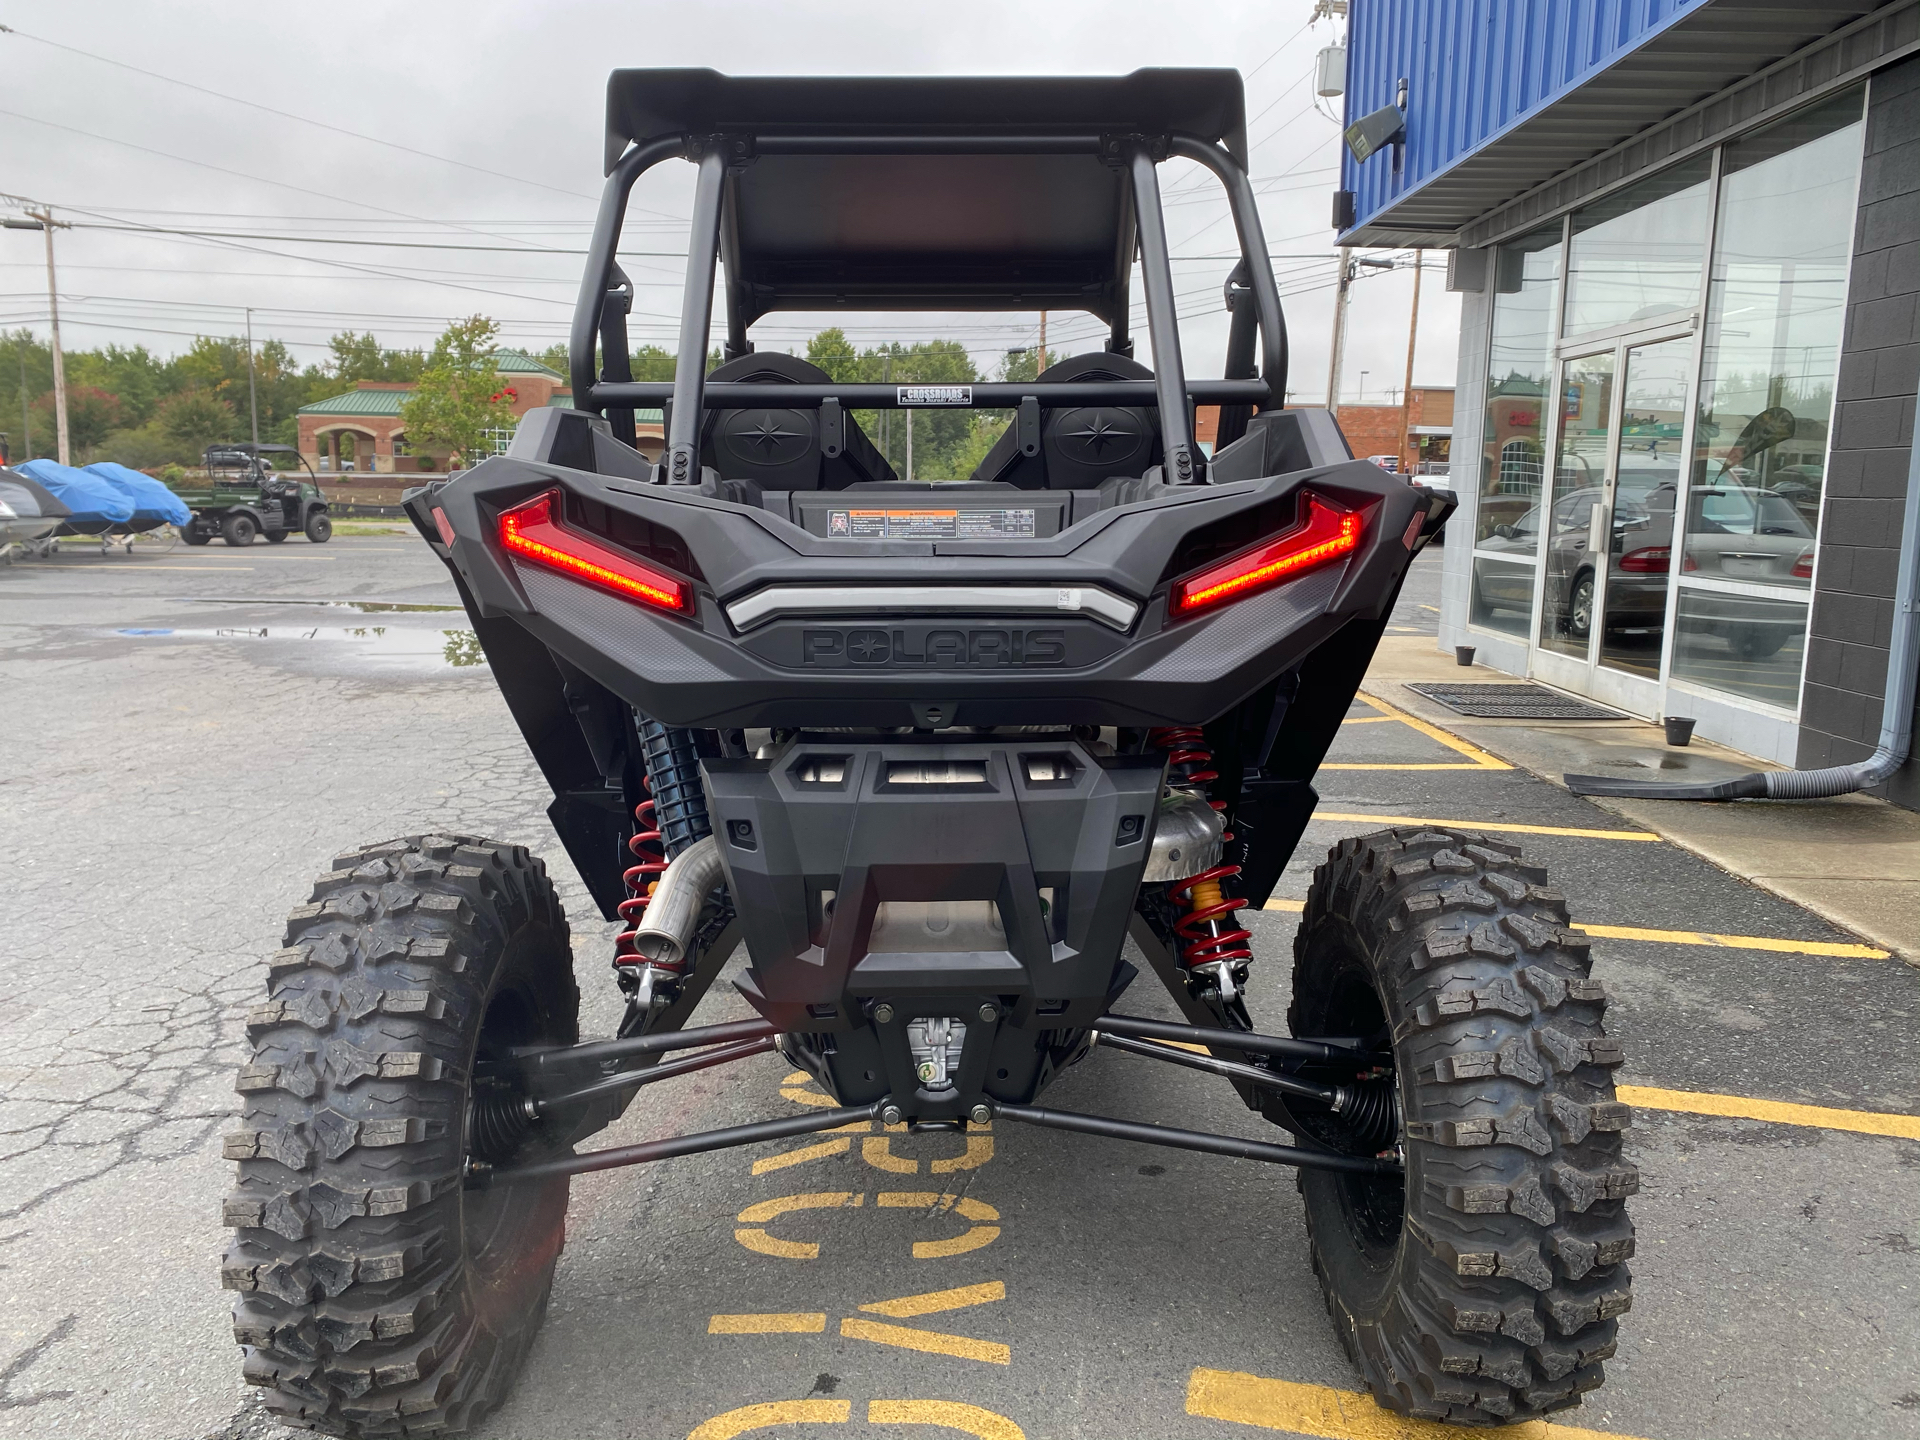 2021 Polaris RZR XP Turbo in Albemarle, North Carolina - Photo 7